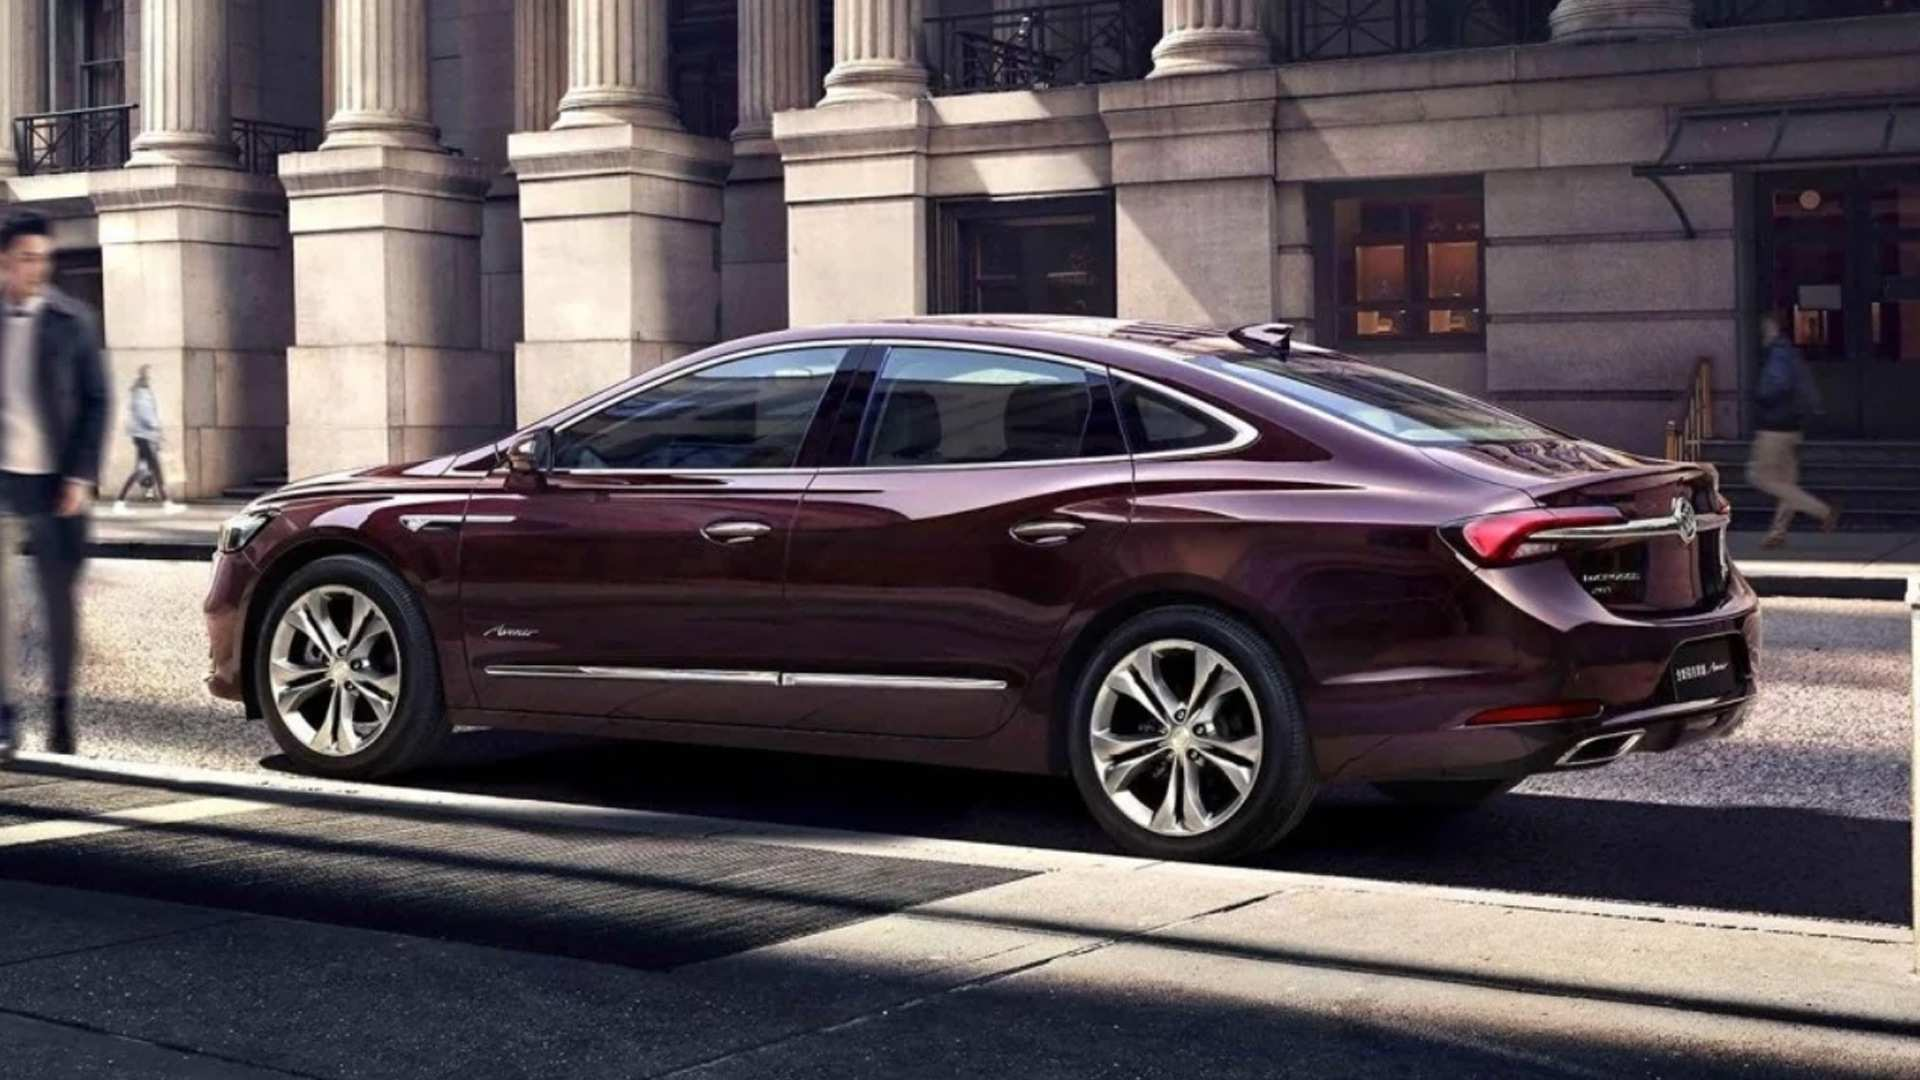 39 Great When Will The 2020 Buick Lacrosse Be Released Interior by When Will The 2020 Buick Lacrosse Be Released